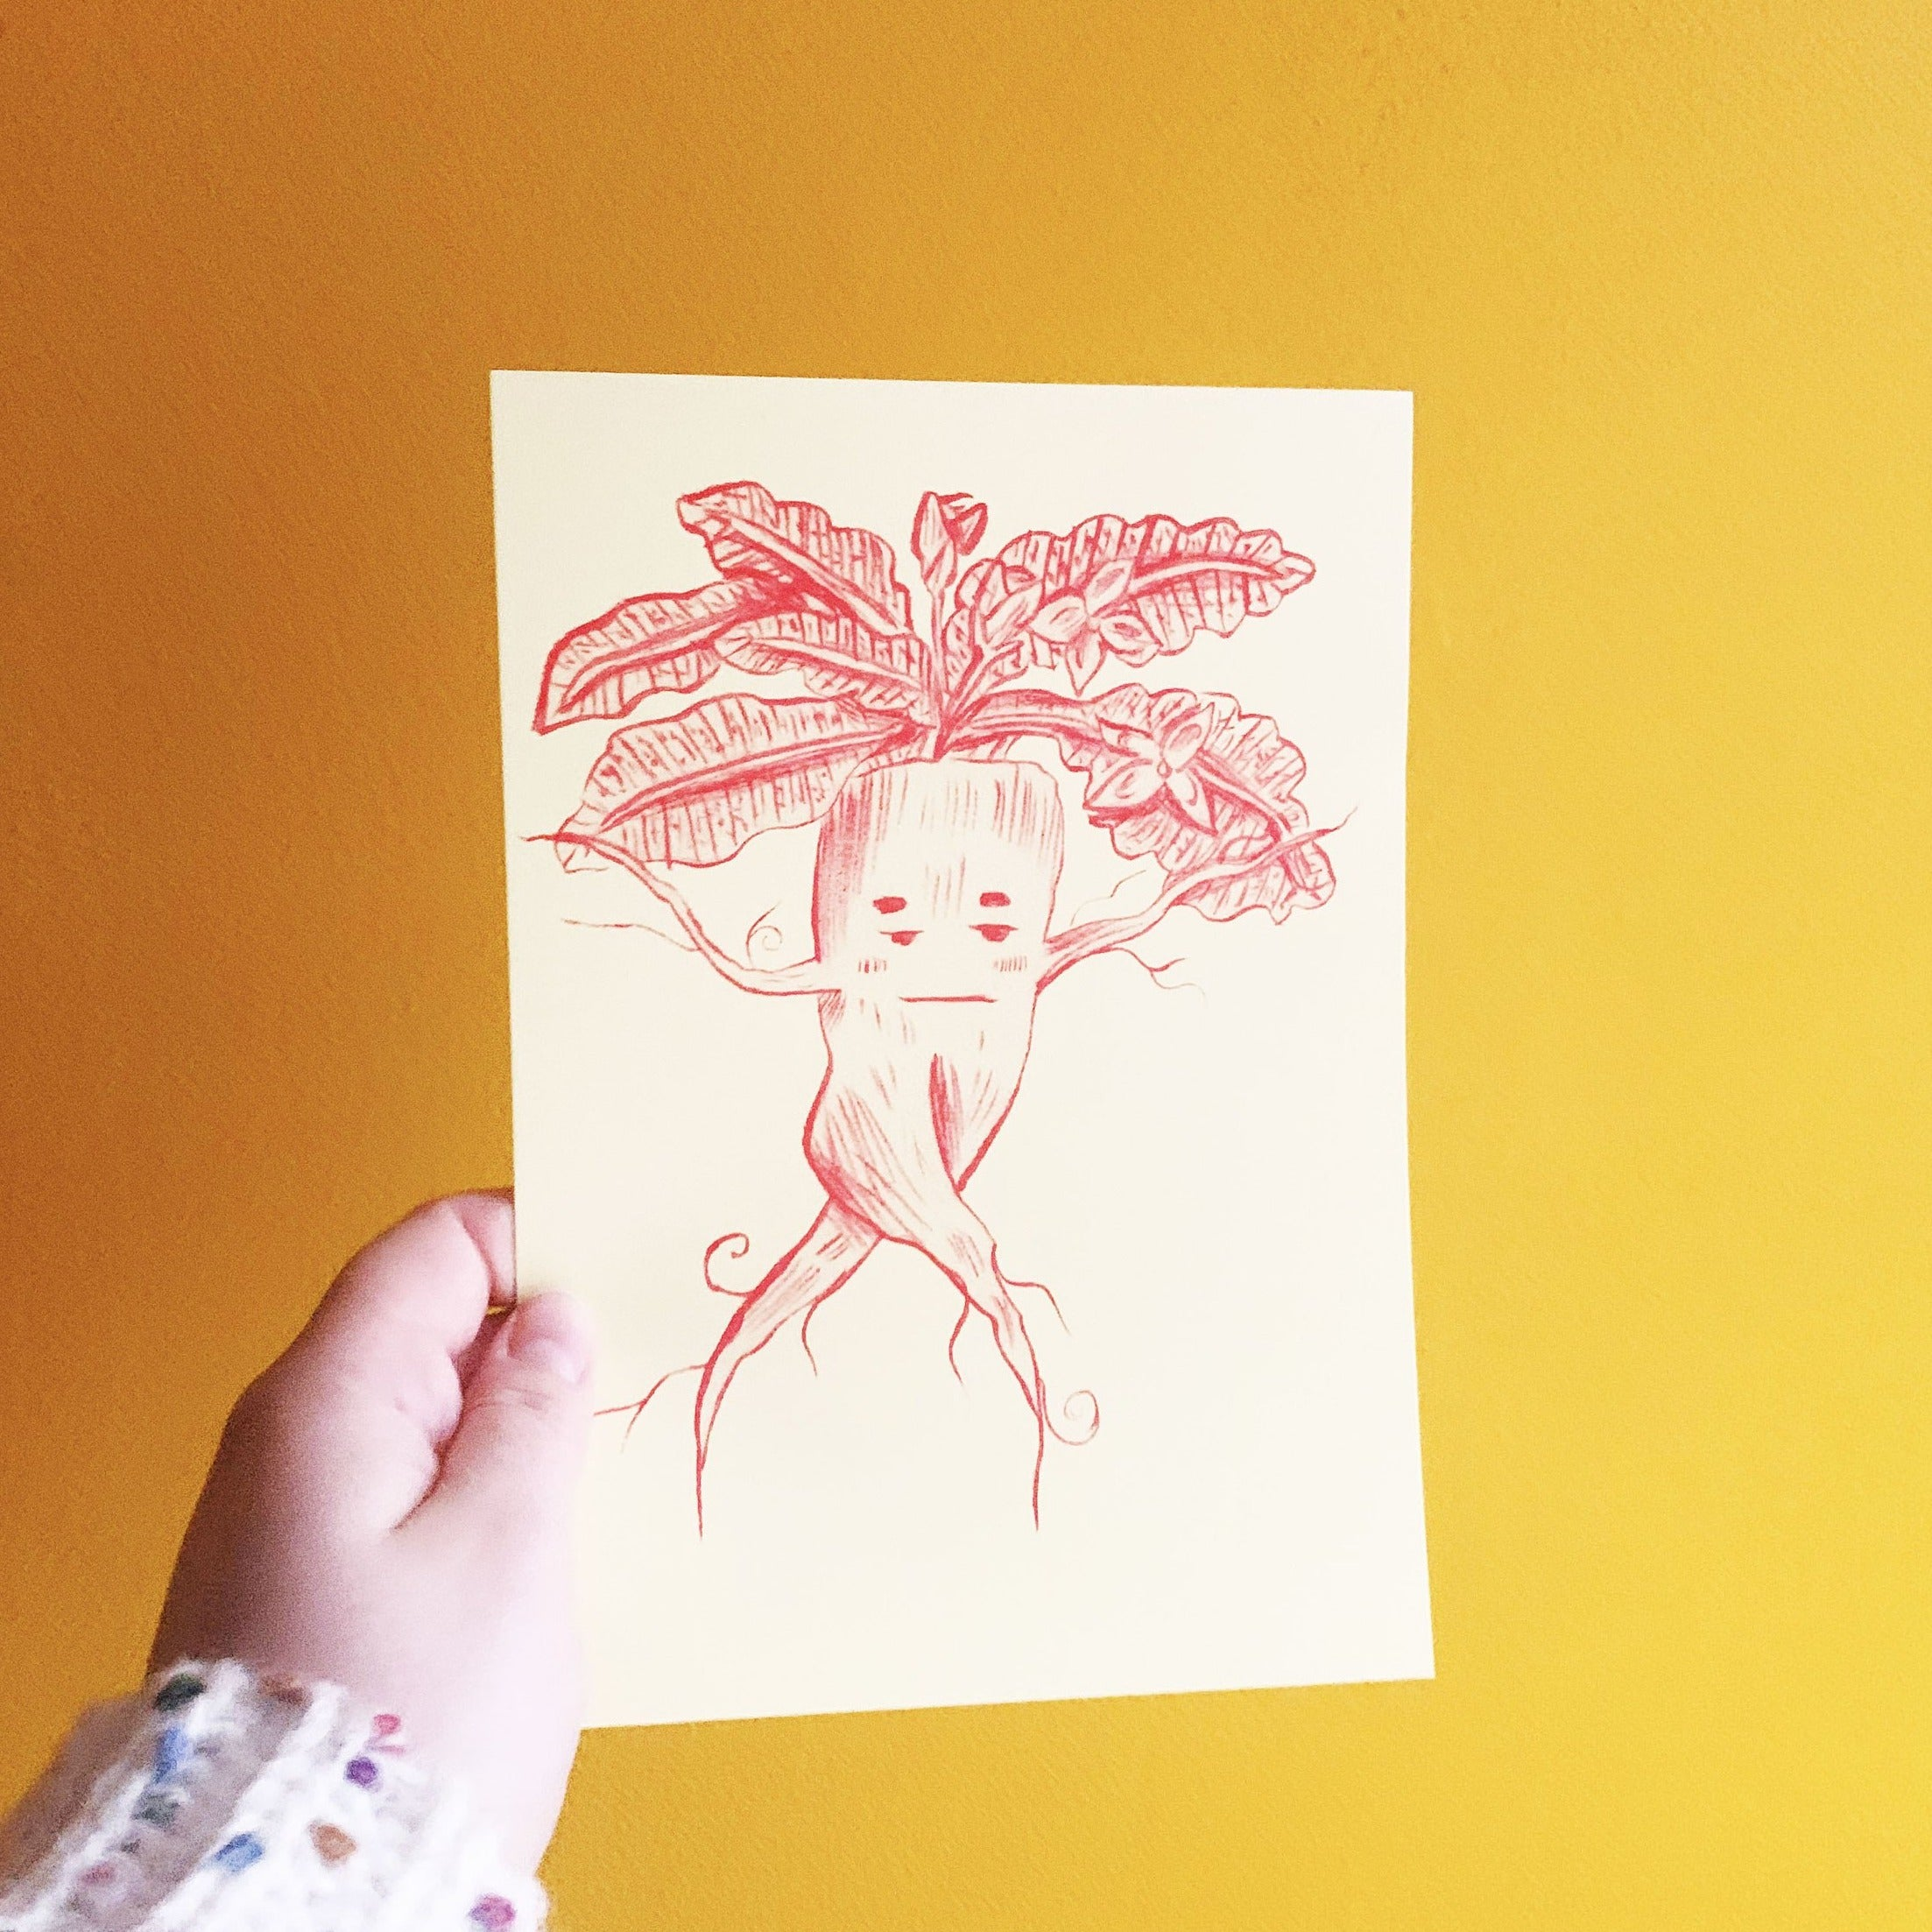 Mandrake Fantasy Inspired A5 Red & Yellow Risograph Print